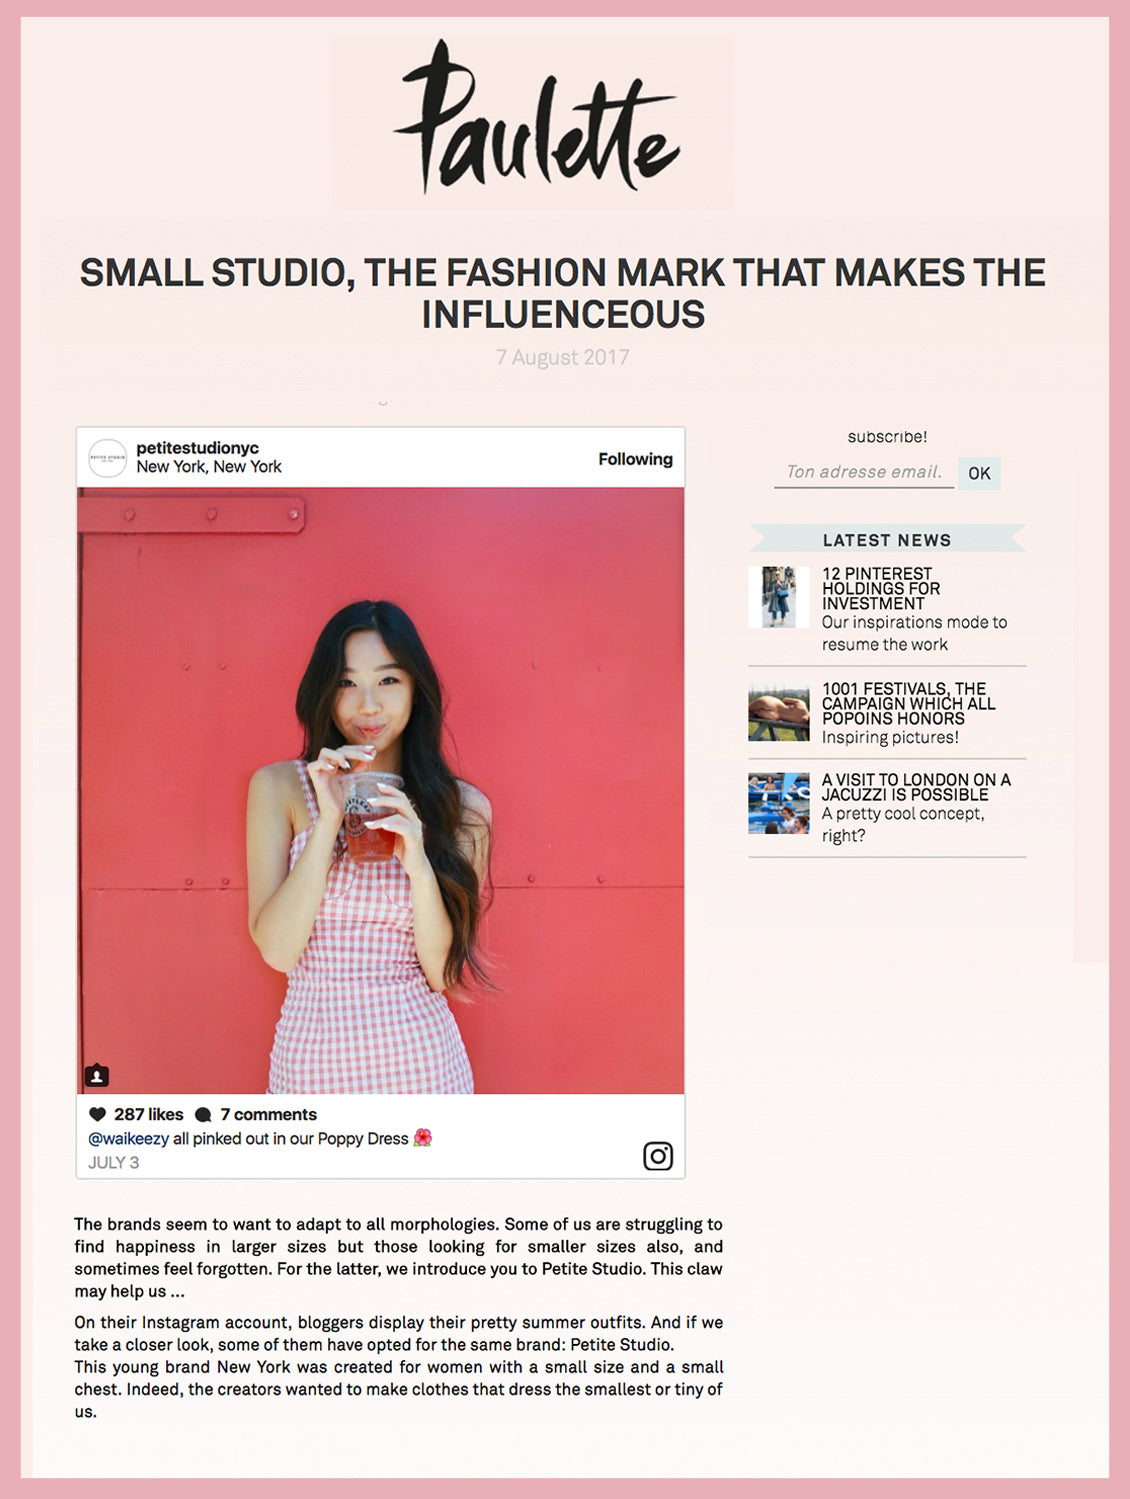 SMALL STUDIO, THE FASHION MARK THAT MAKES THE INFLUENCEOUS